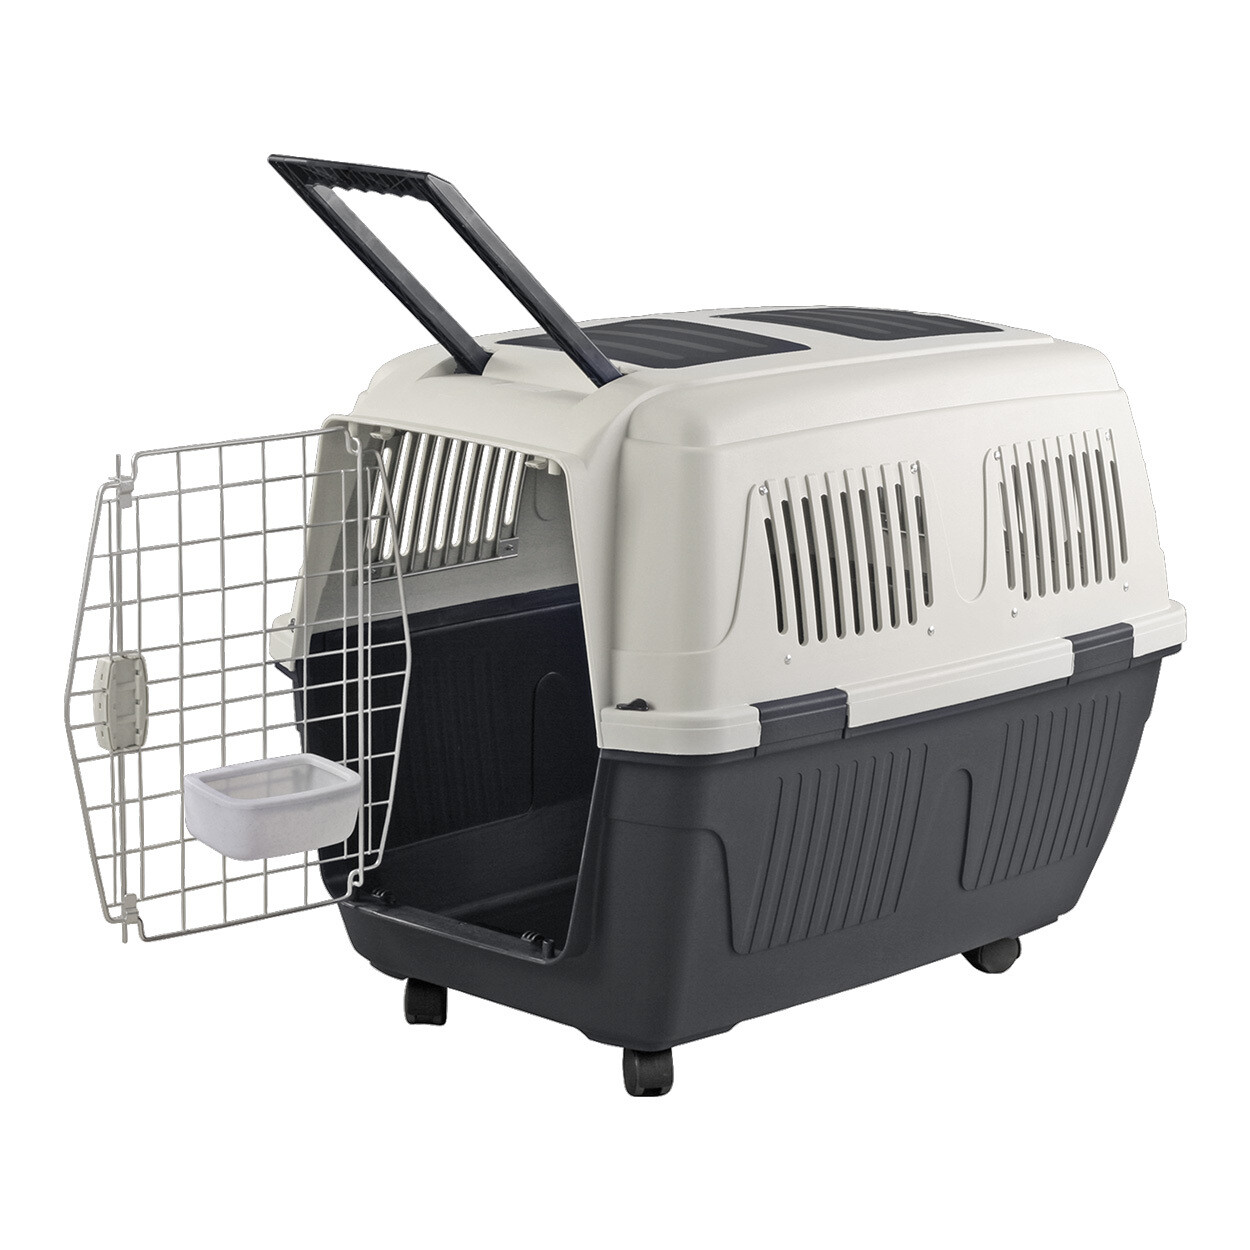 ANIMAL TREASURES DELUXE DOG KENNEL - LARGE